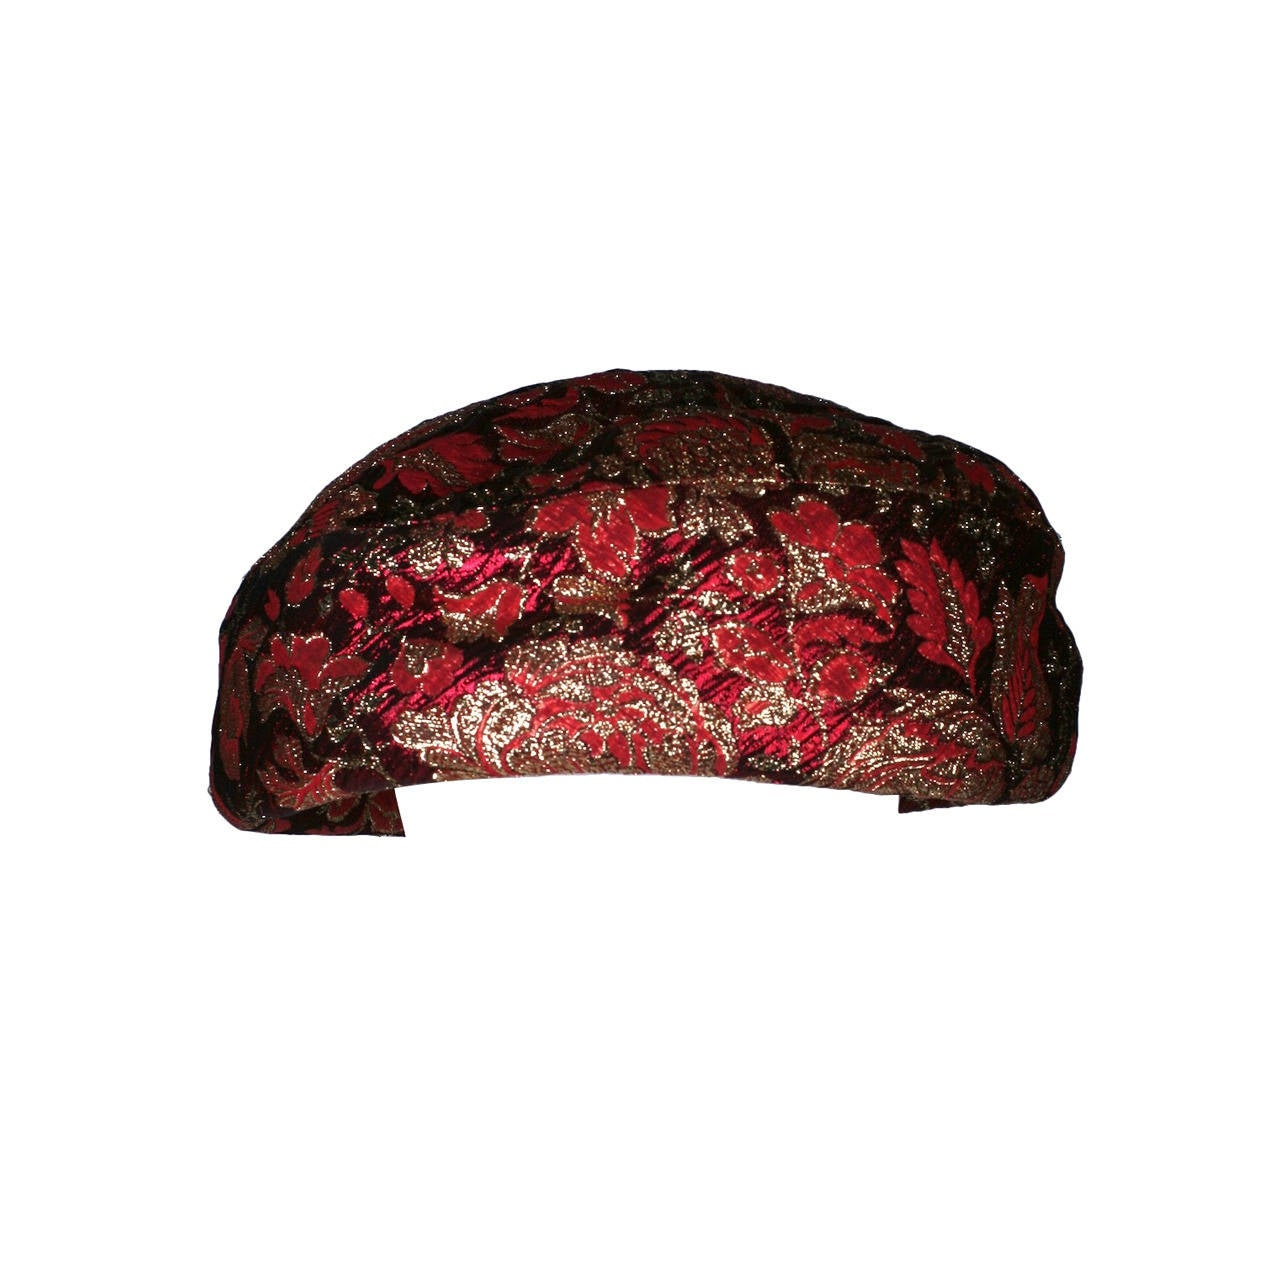 Jacques Heim Haute Couture Lame Broche Bowl Hat 1